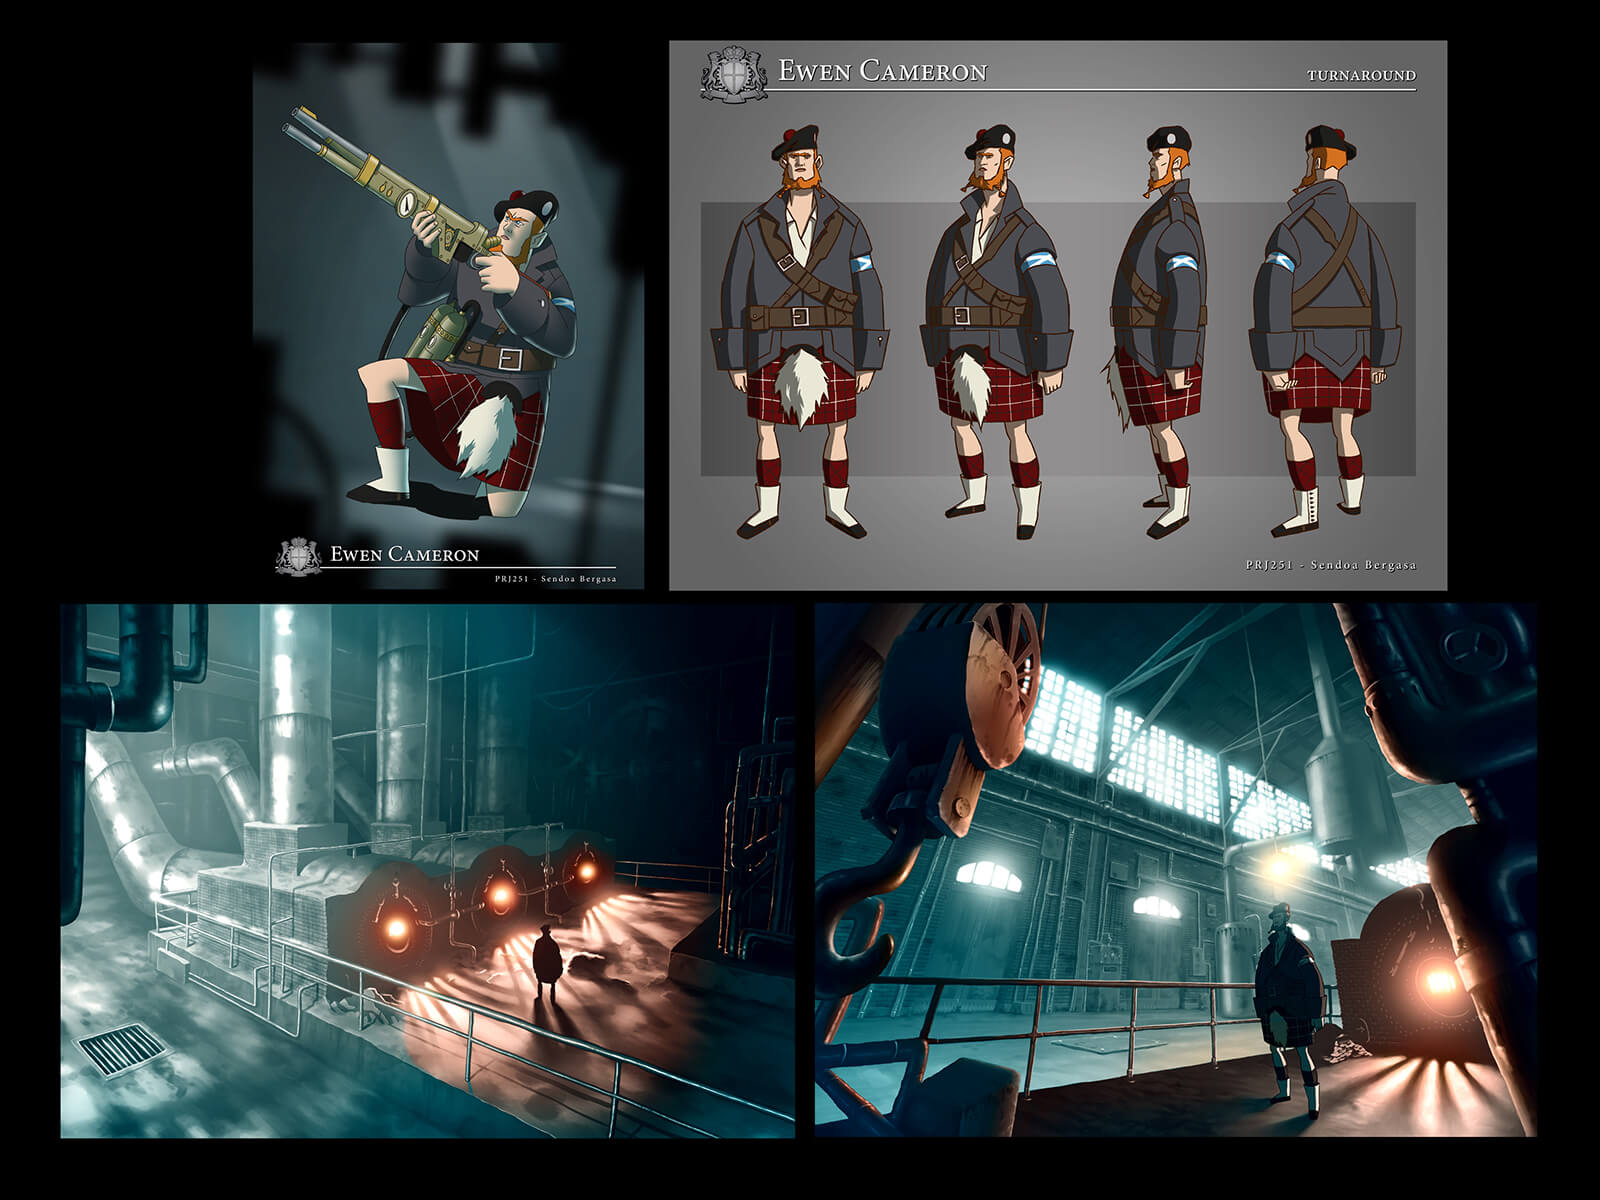 Color concept art of an orange-haired man in a warehouse wearing Scottish highlander garb and posing with steam gun.